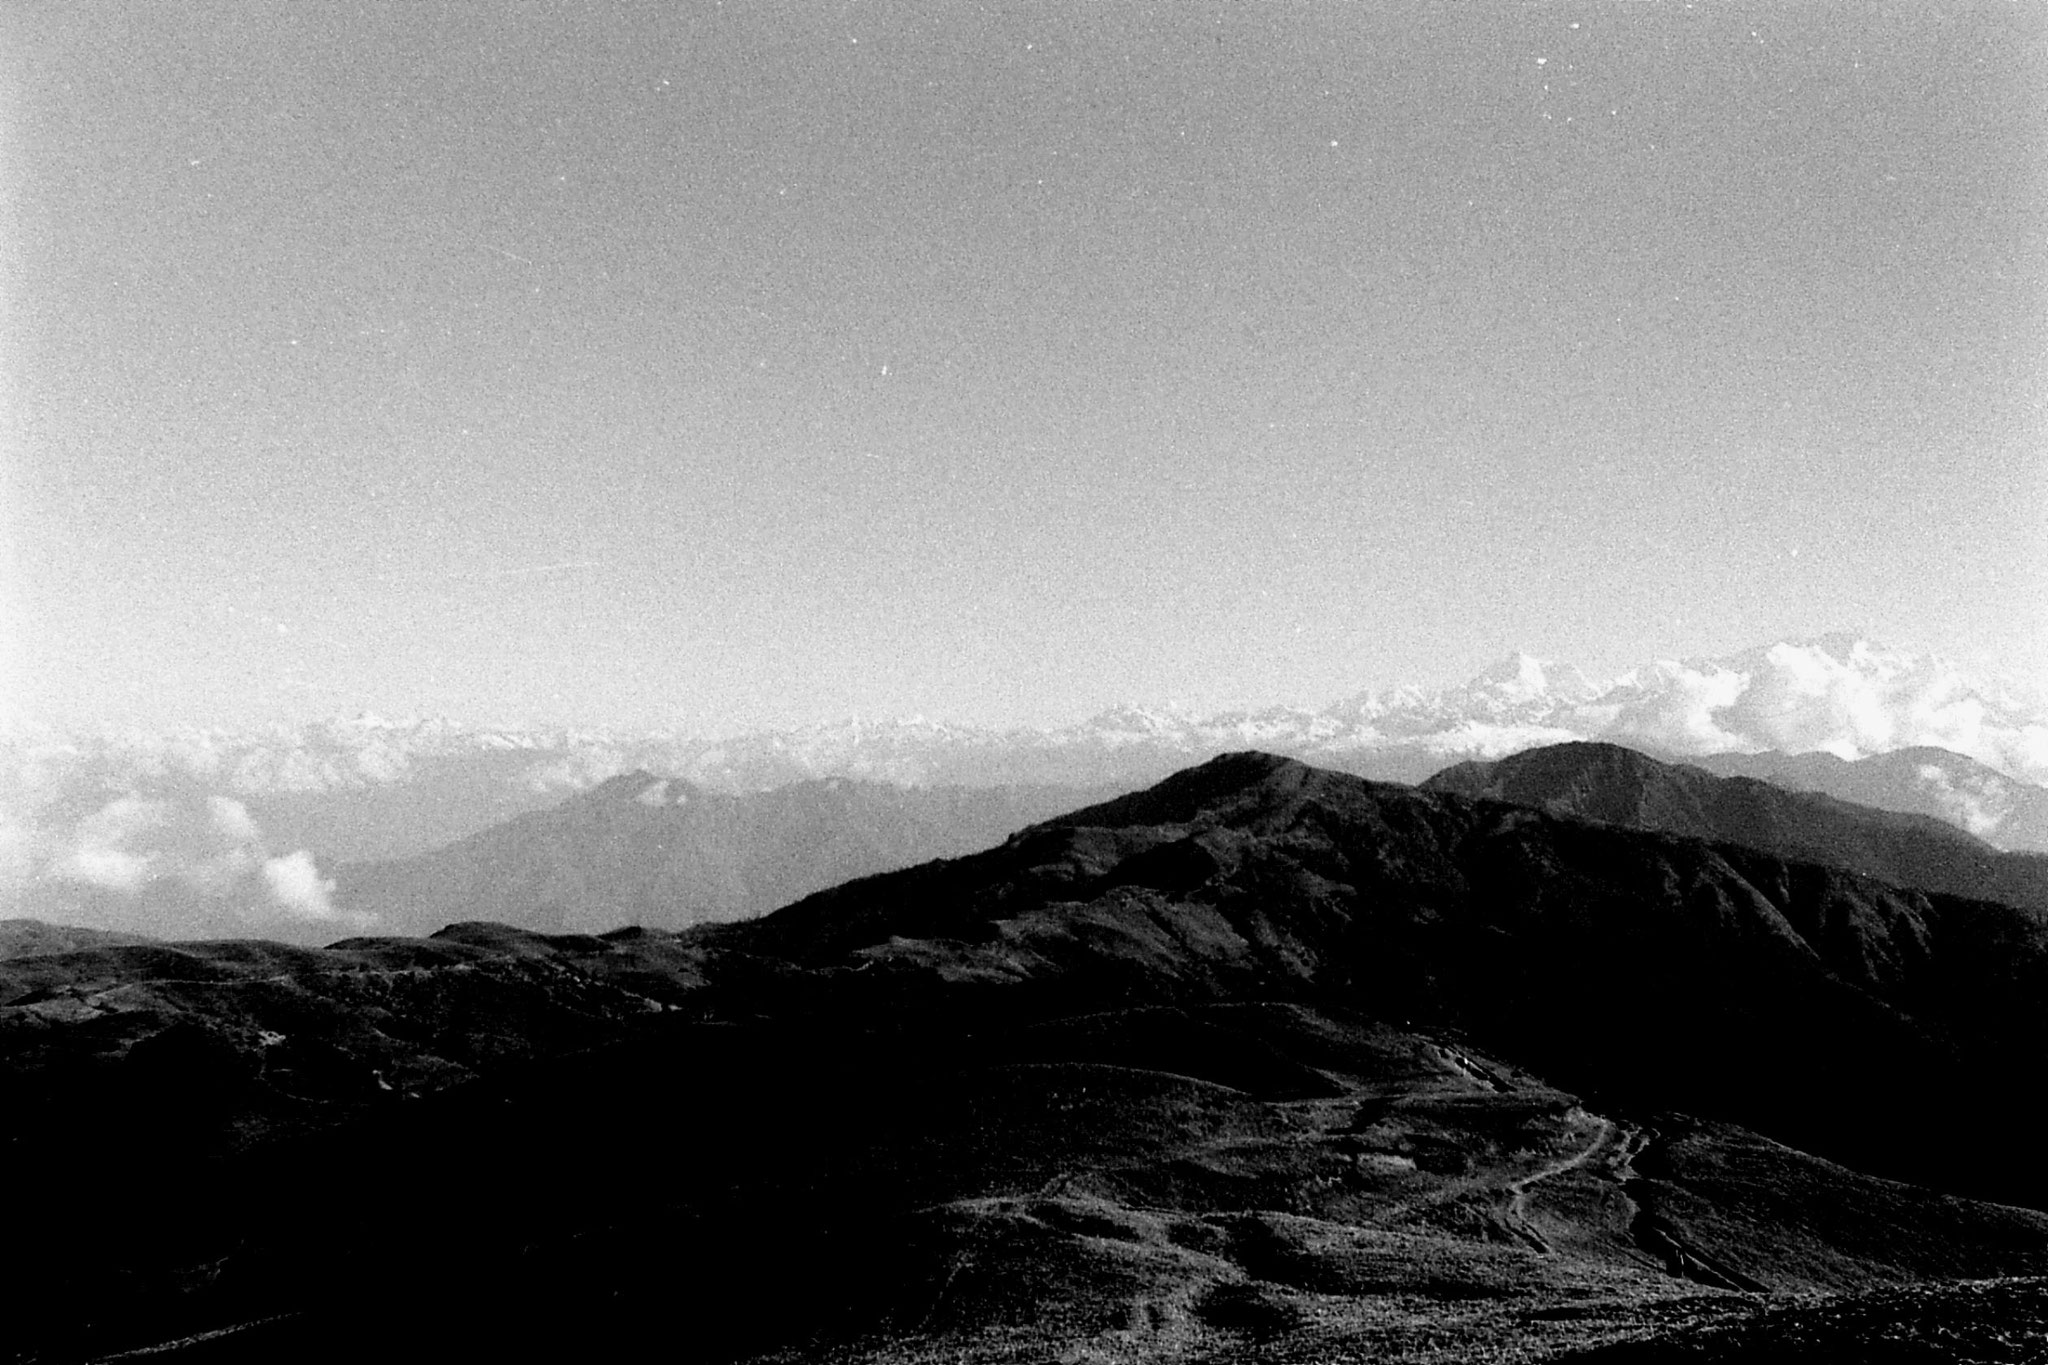 8/5/1990: 28: from Sabarkum, panorama Everest to Kanchenjunga